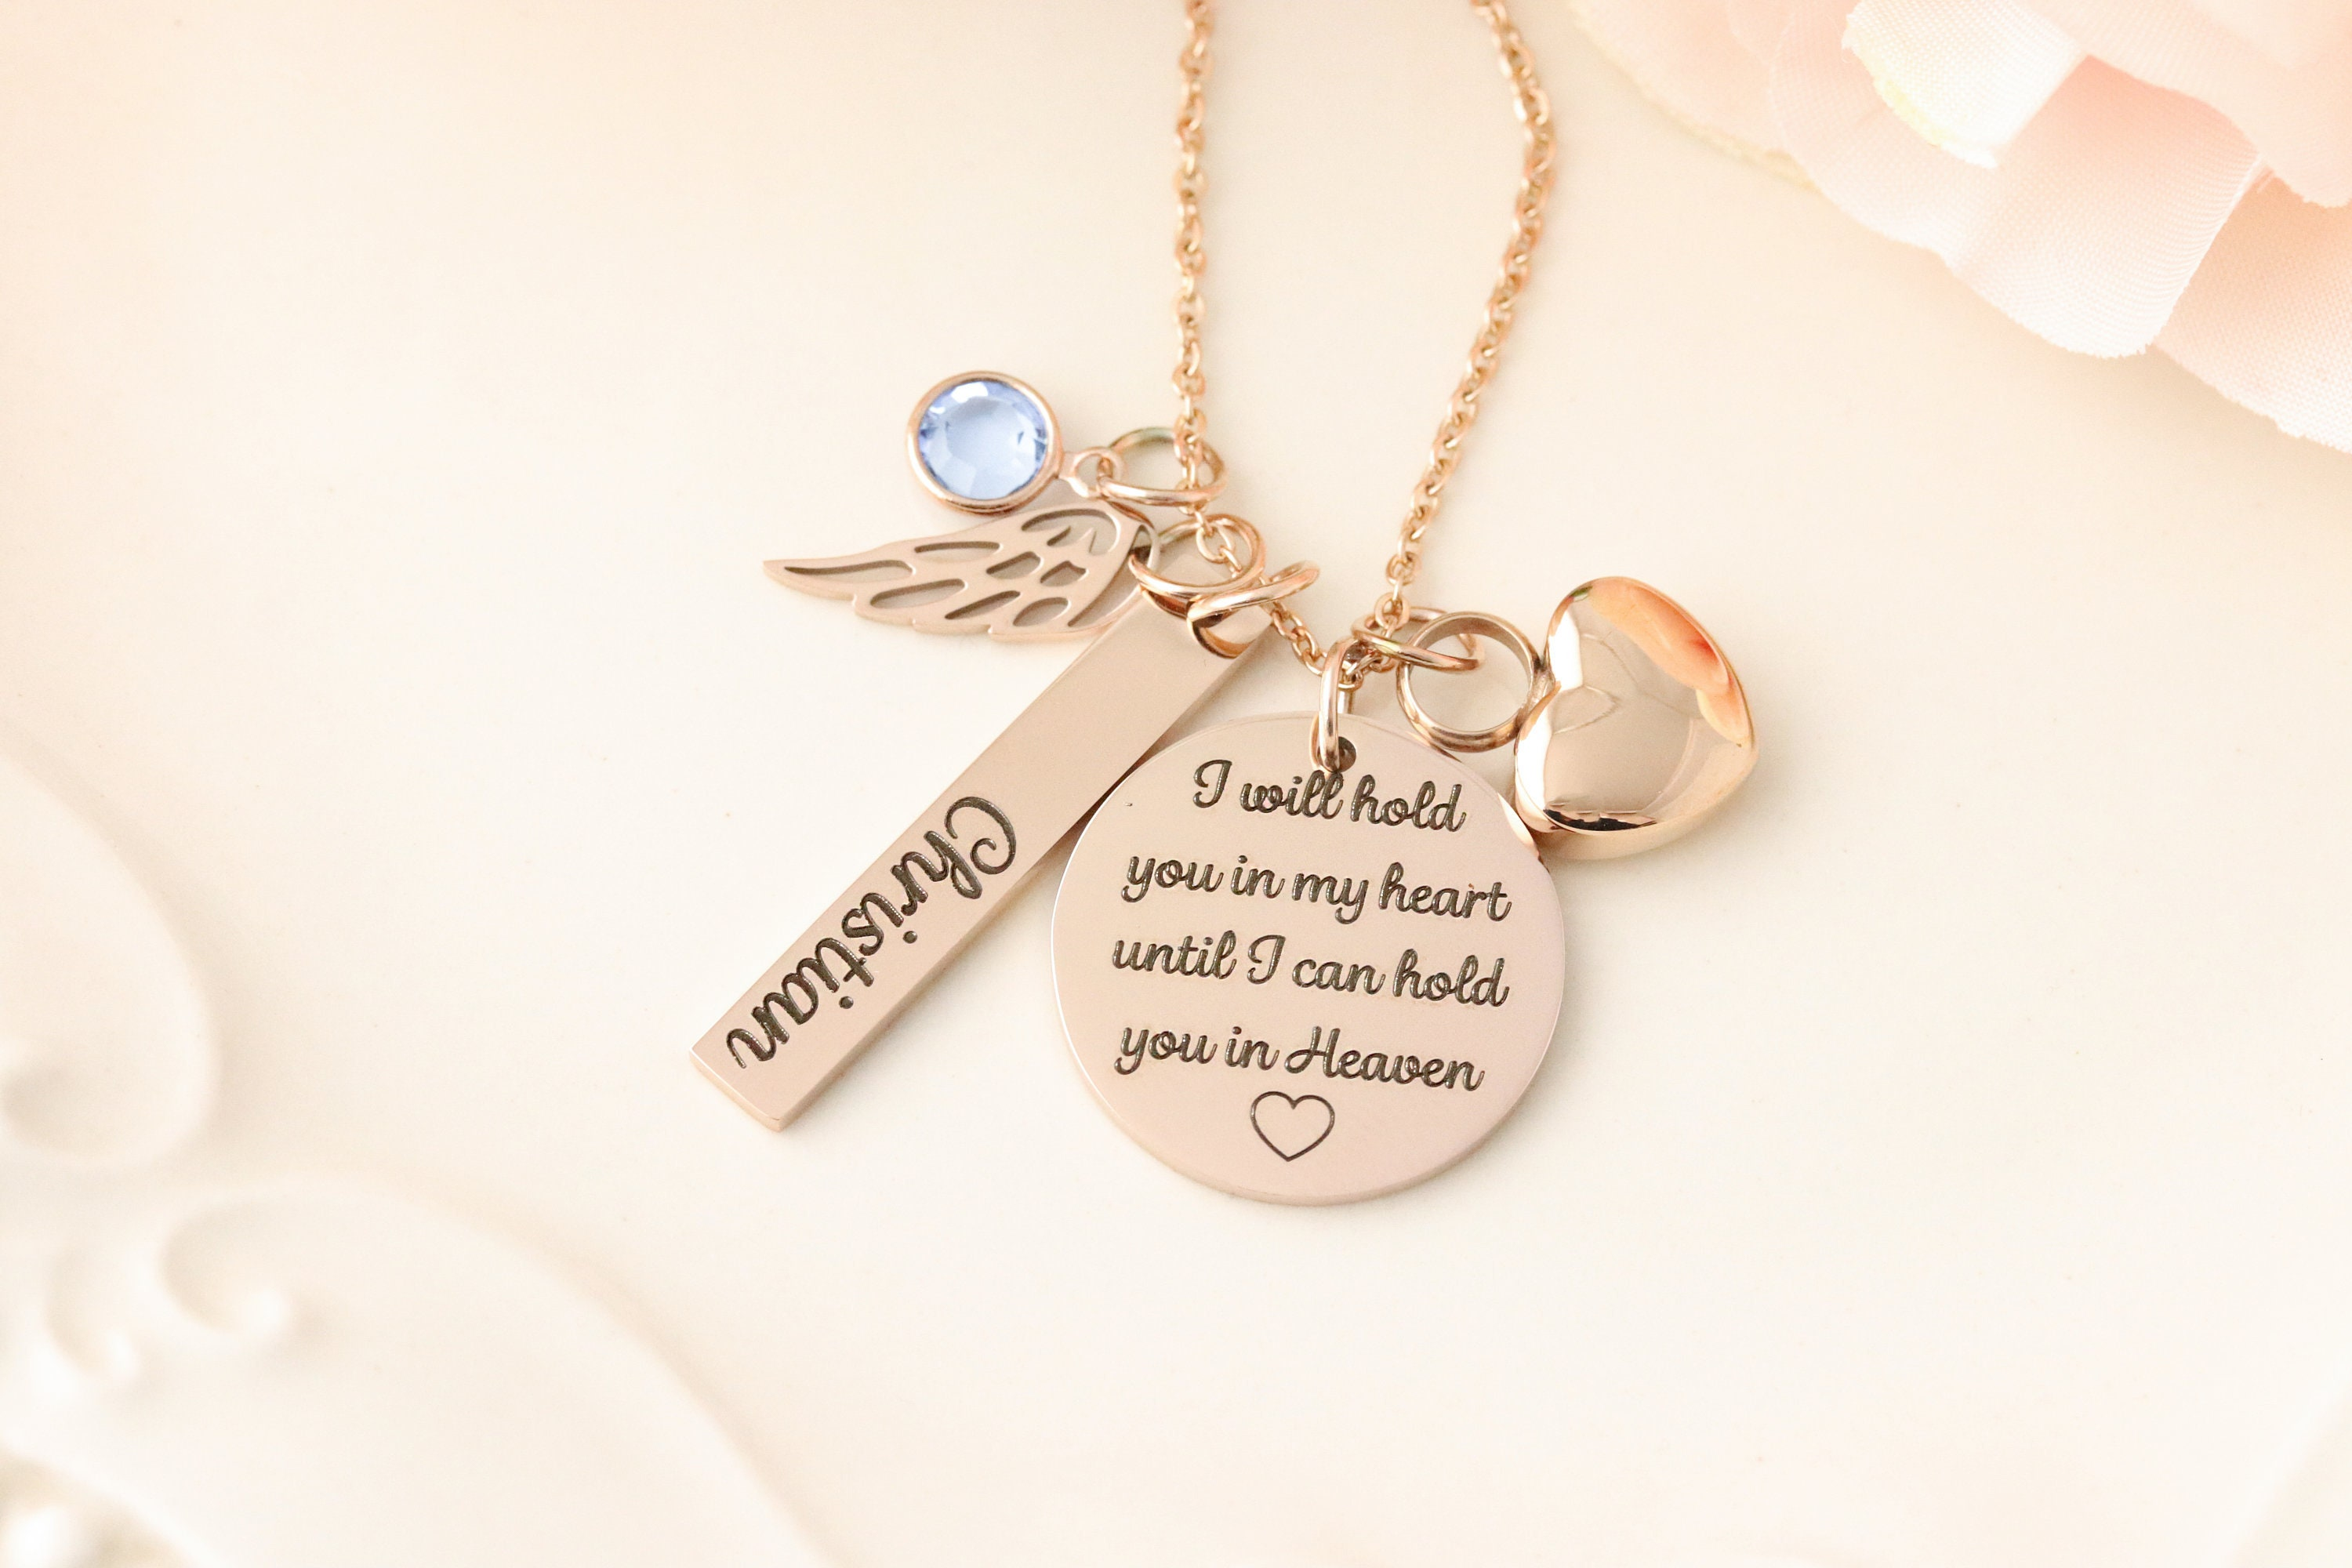 Urn Memorial Necklace Cremation Urn Jewelry Personalized Urn